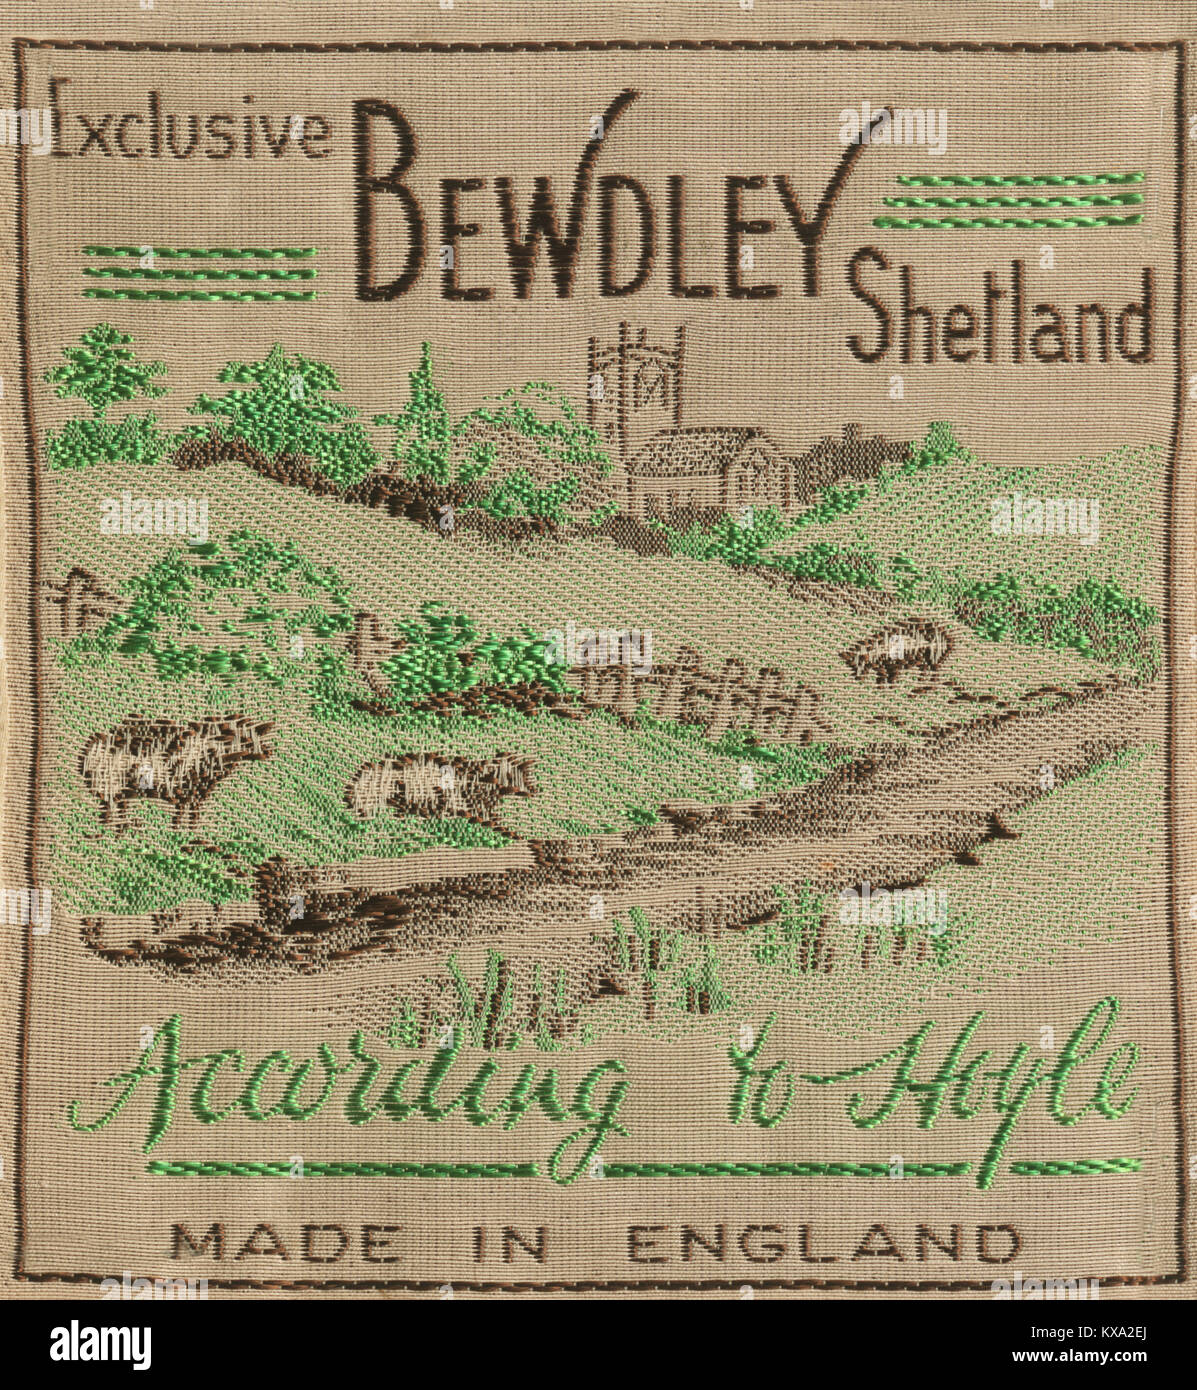 Exclusive Bewdley Shetland - Stock Image